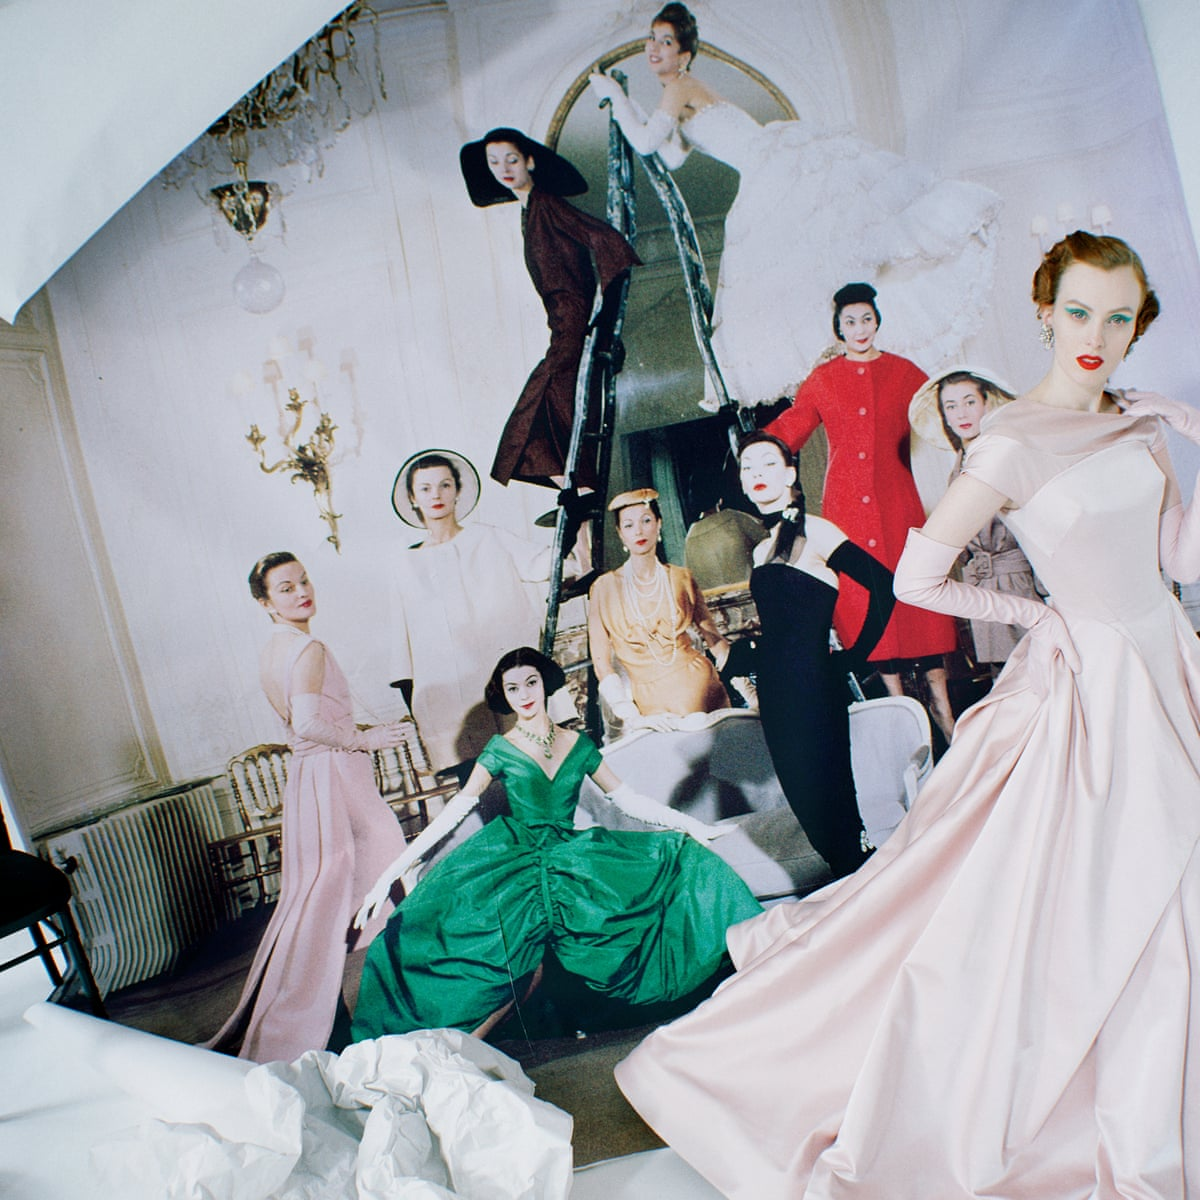 Tim Walker There S An Extremity To My Interest In Beauty Fashion The Guardian